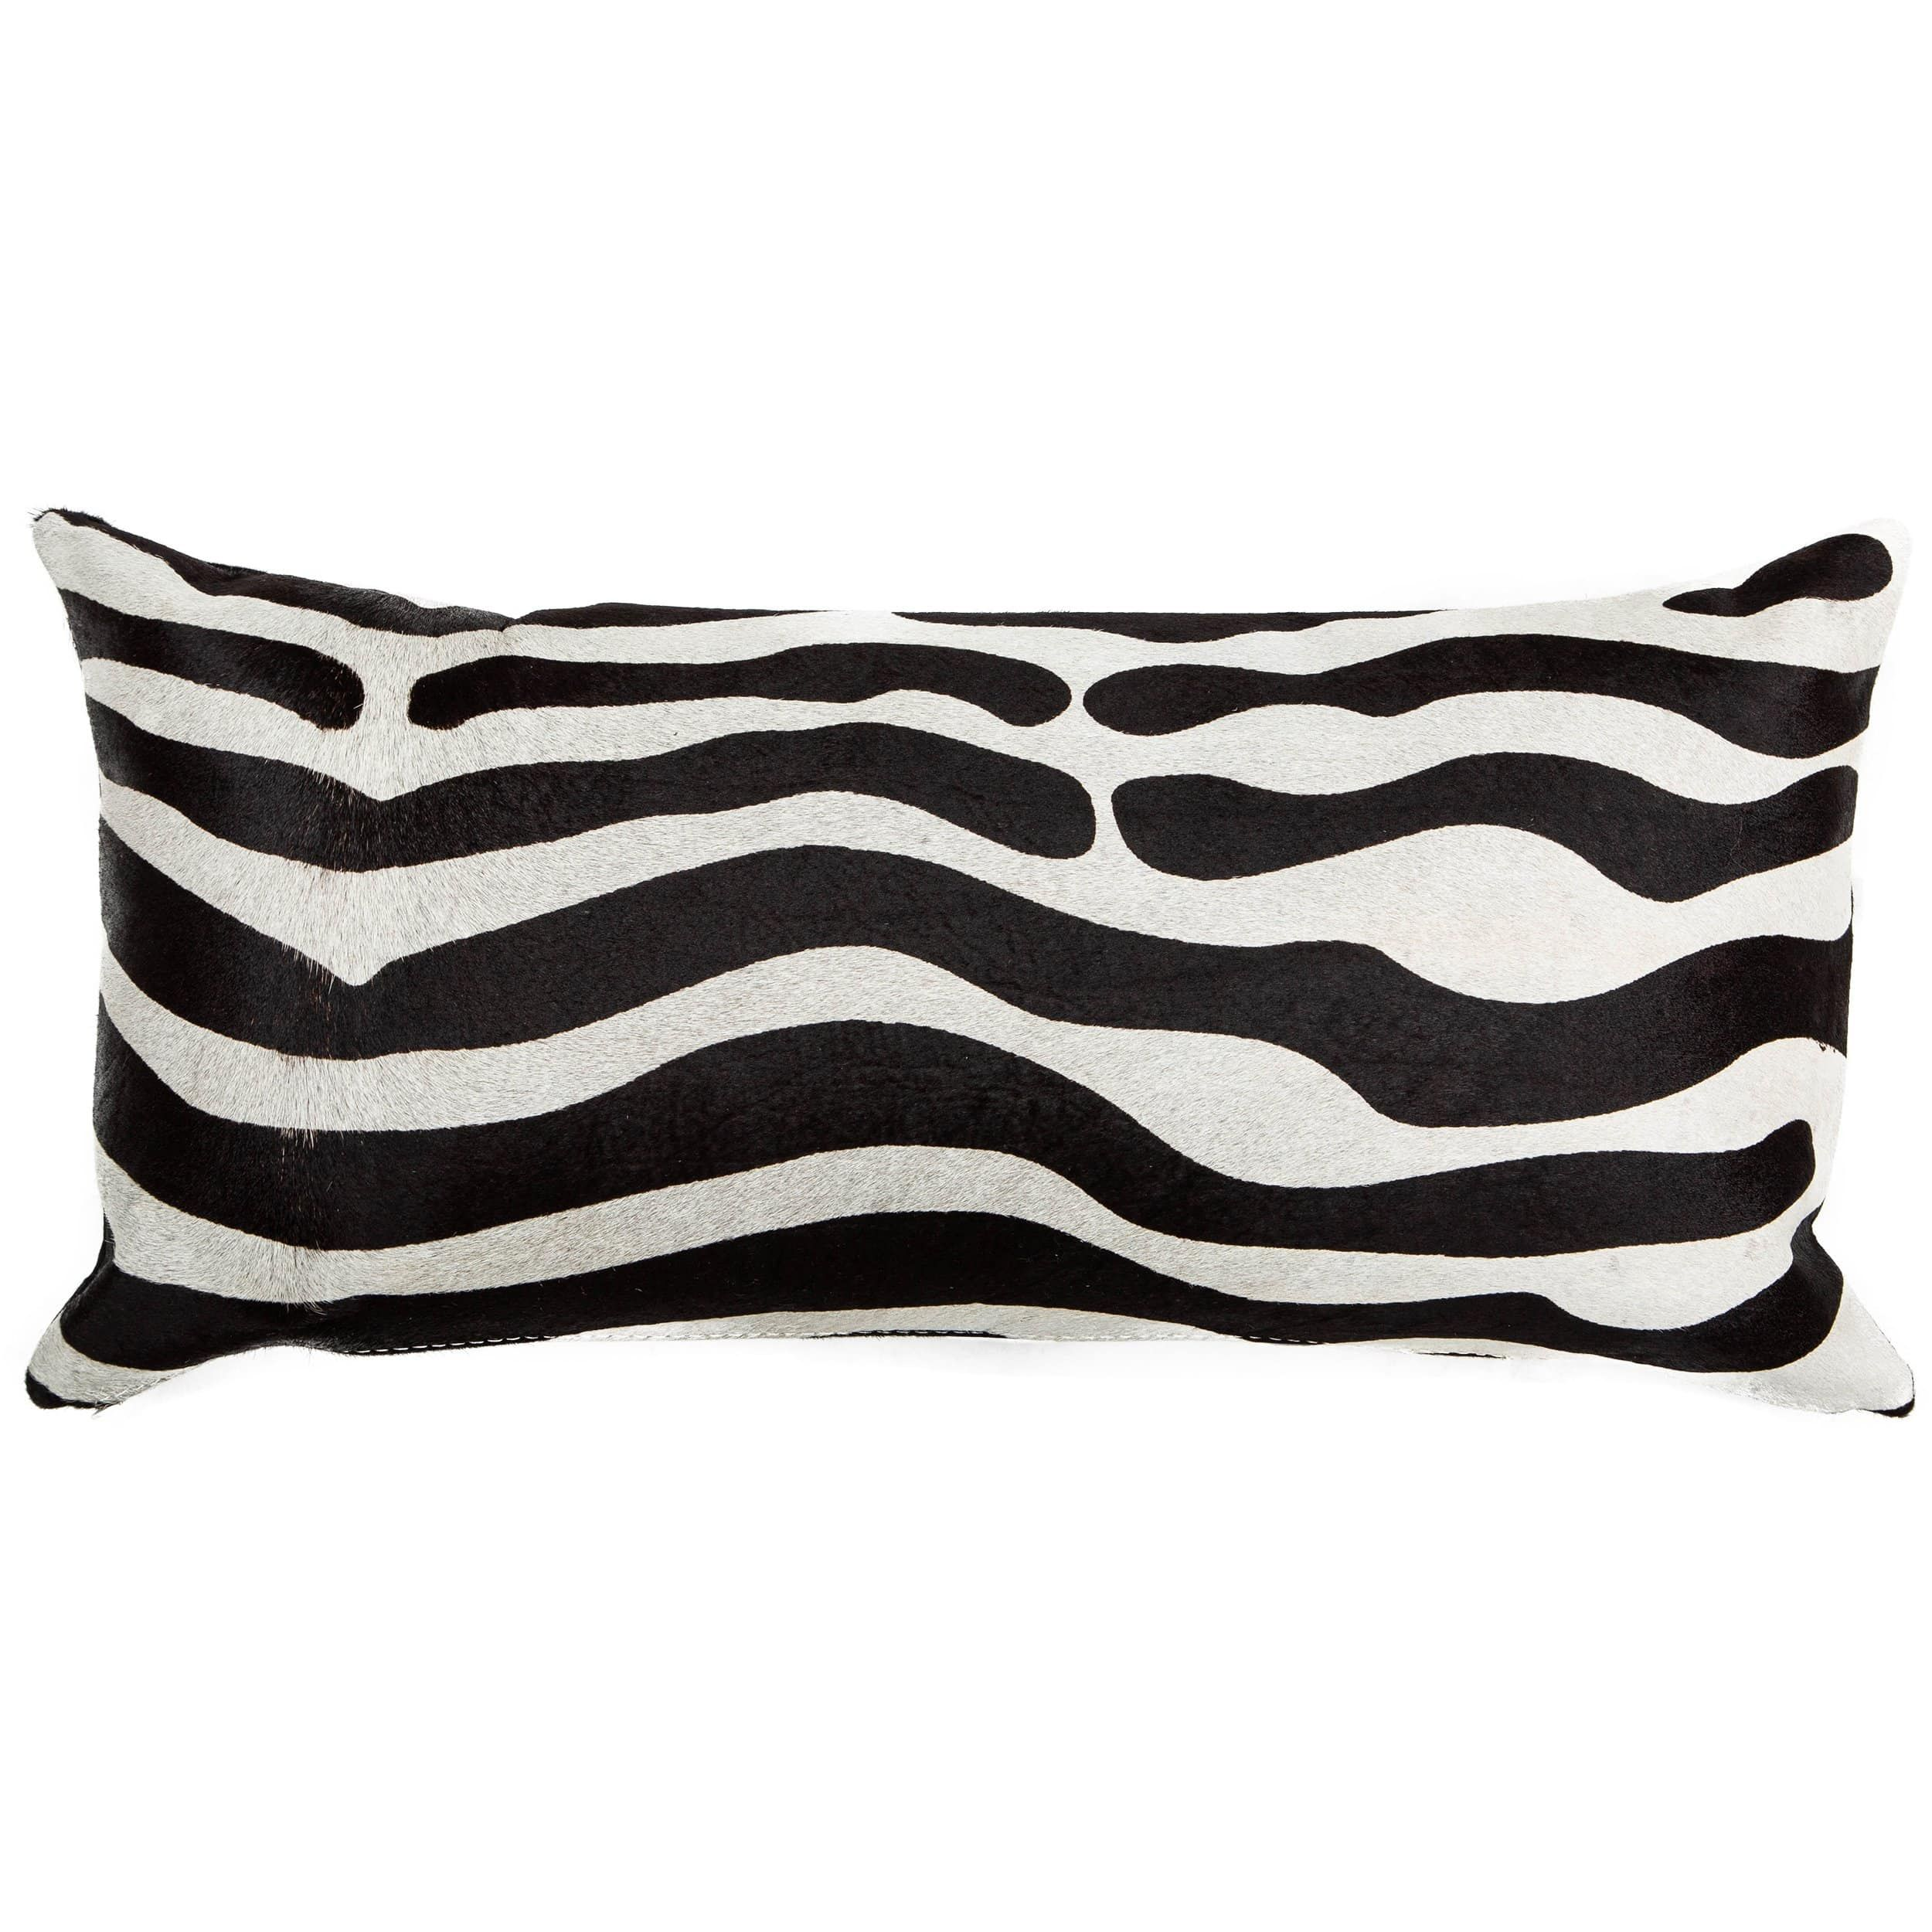 td {border: 1px solid #ccc;}br {mso-data-placement:same-cell;} The Zebra on White Hide Lumbar Pillow adds eyecatching style and texture to a setting.